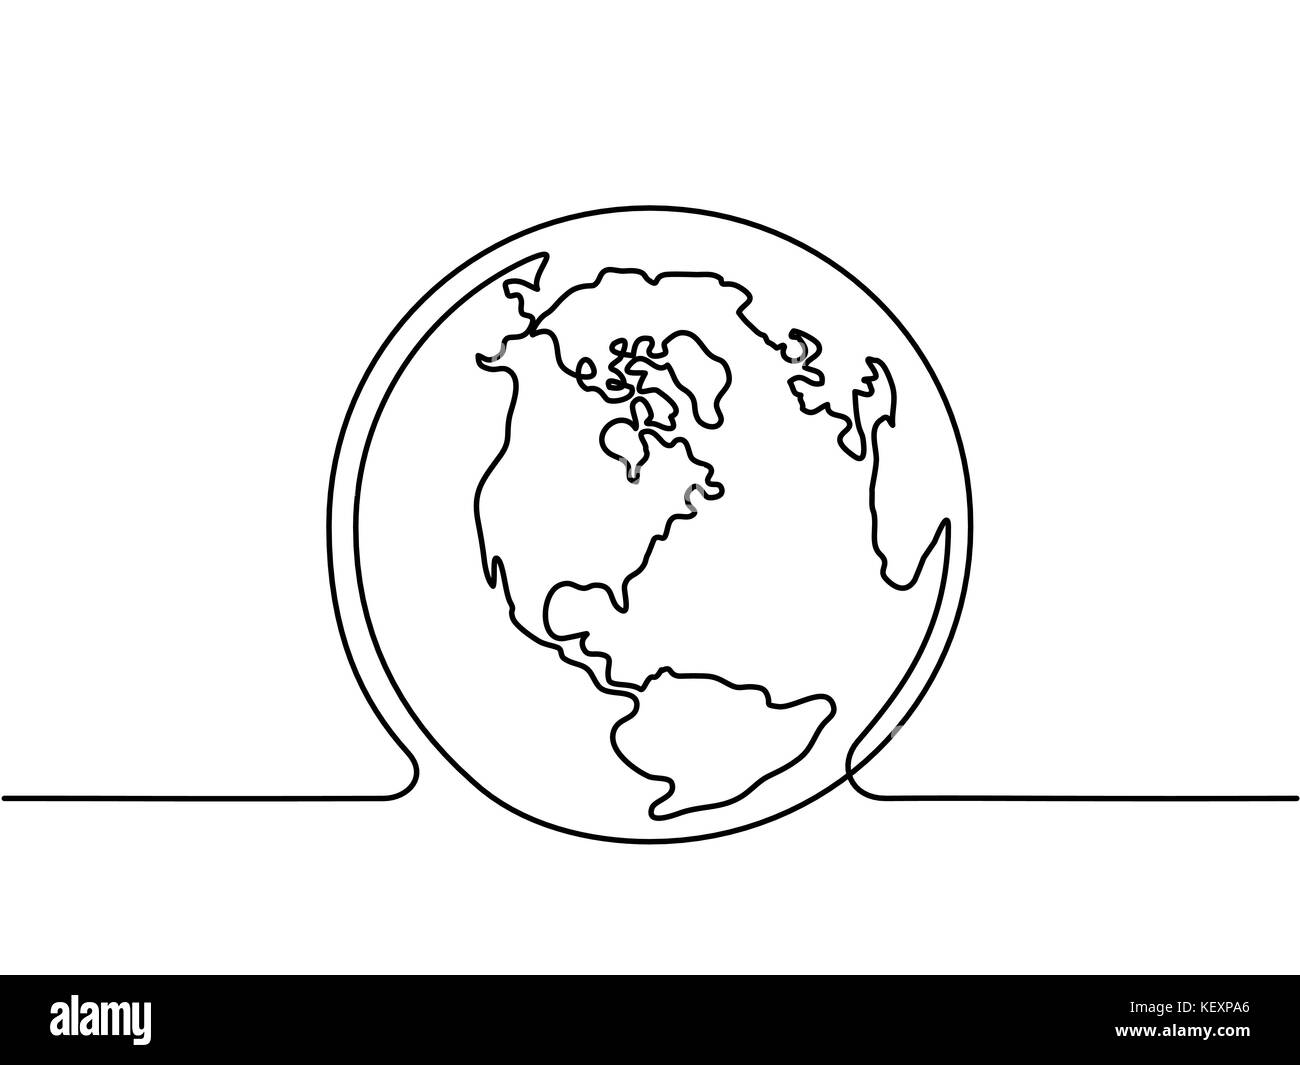 Globe of the Earth - Stock Image